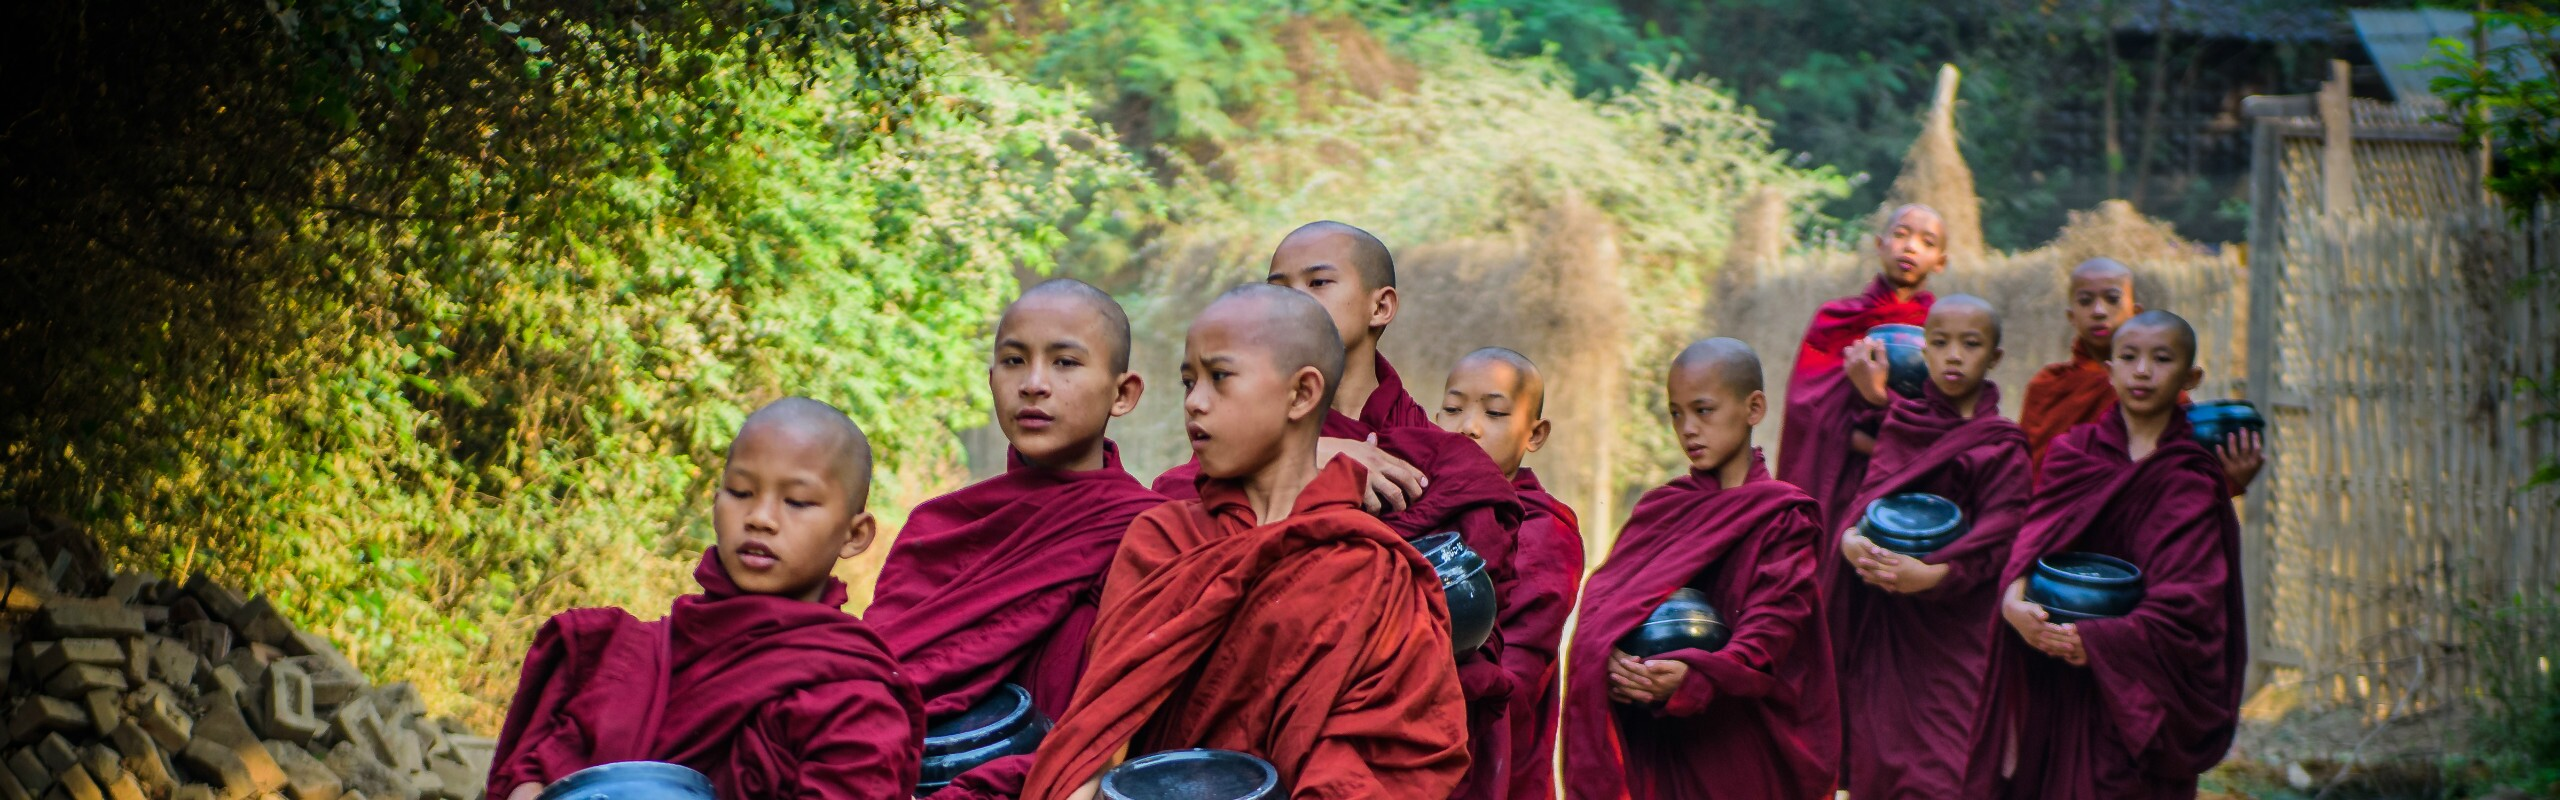 Top 20 Attractions in Chiang Mai